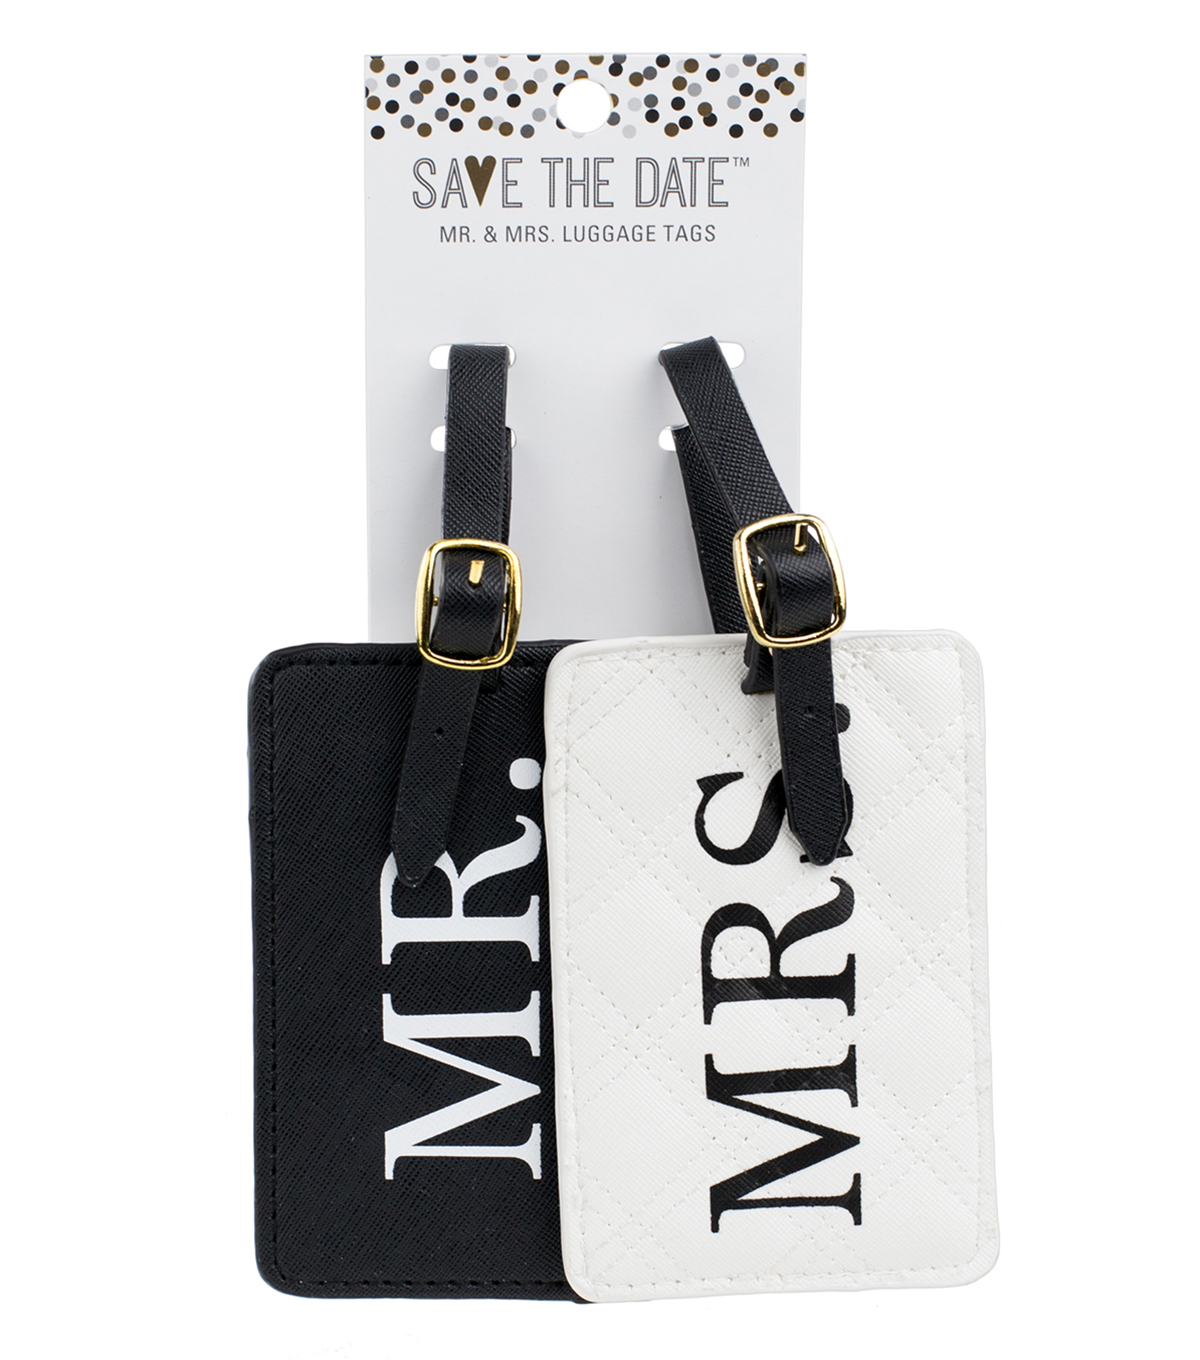 Save the Date Mr. & Mrs. Luggage Tags-Black & White